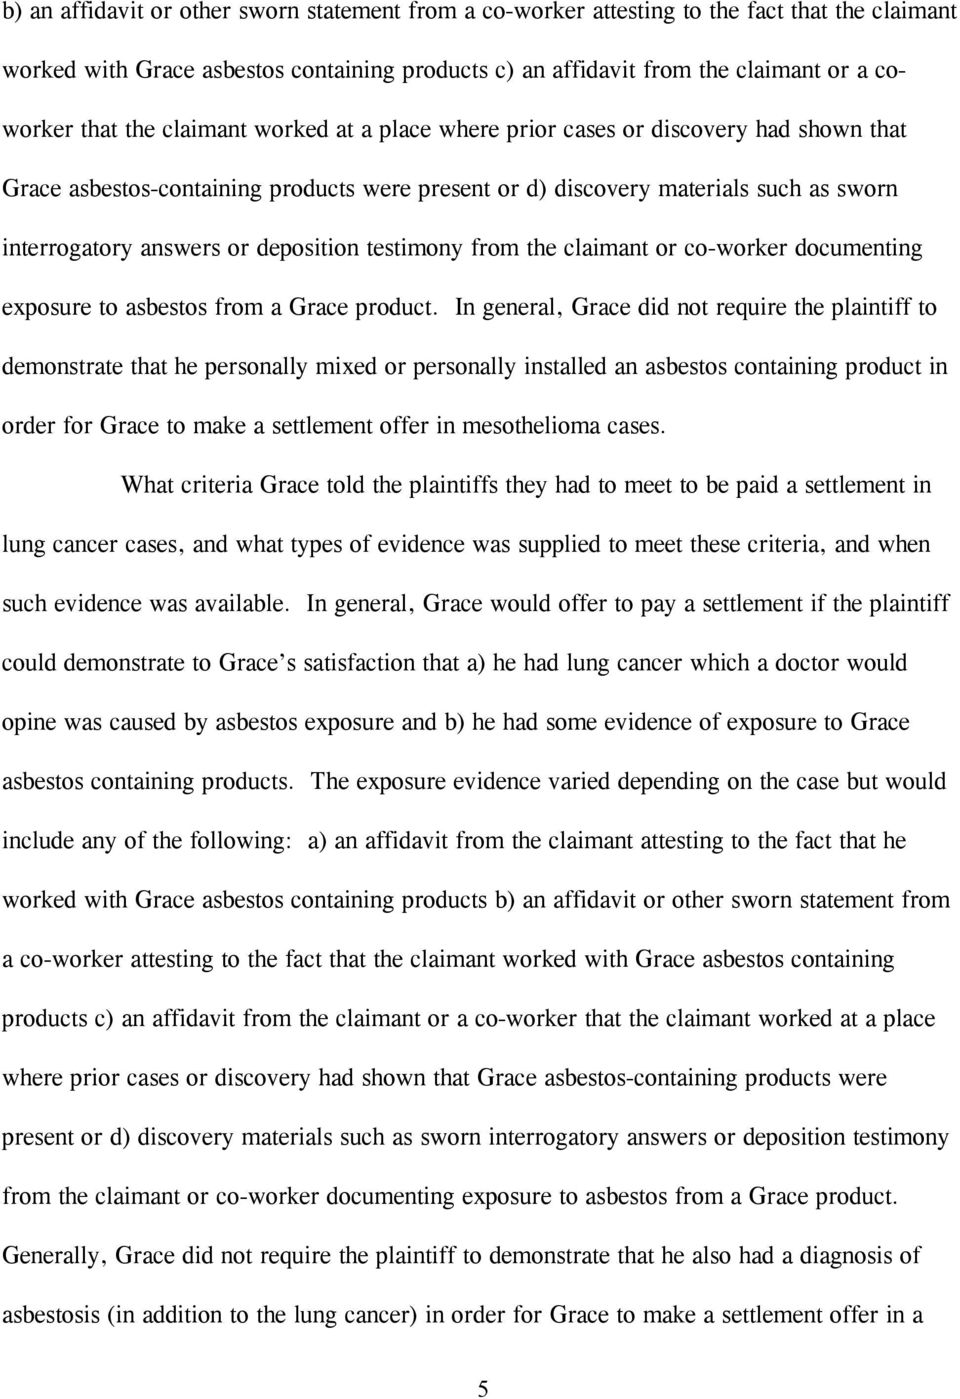 deposition testimony from the claimant or co-worker documenting exposure to asbestos from a Grace product.